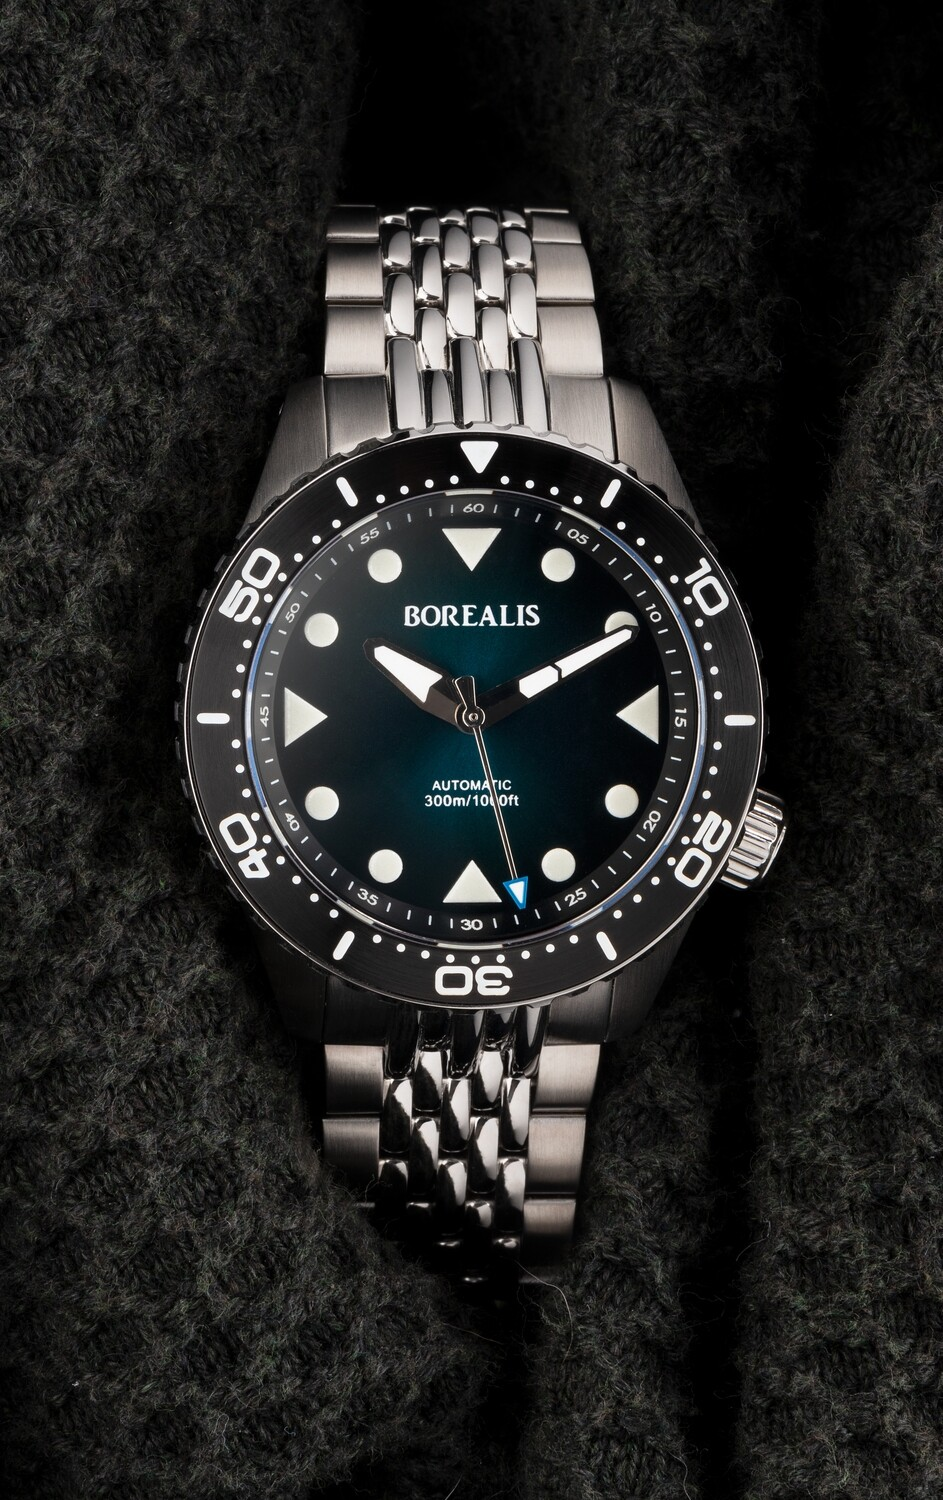 Pre-Order Borealis Neptuno Green Fade to Black Dial No Date NH38 Automatic Movement 300m Diver Watch